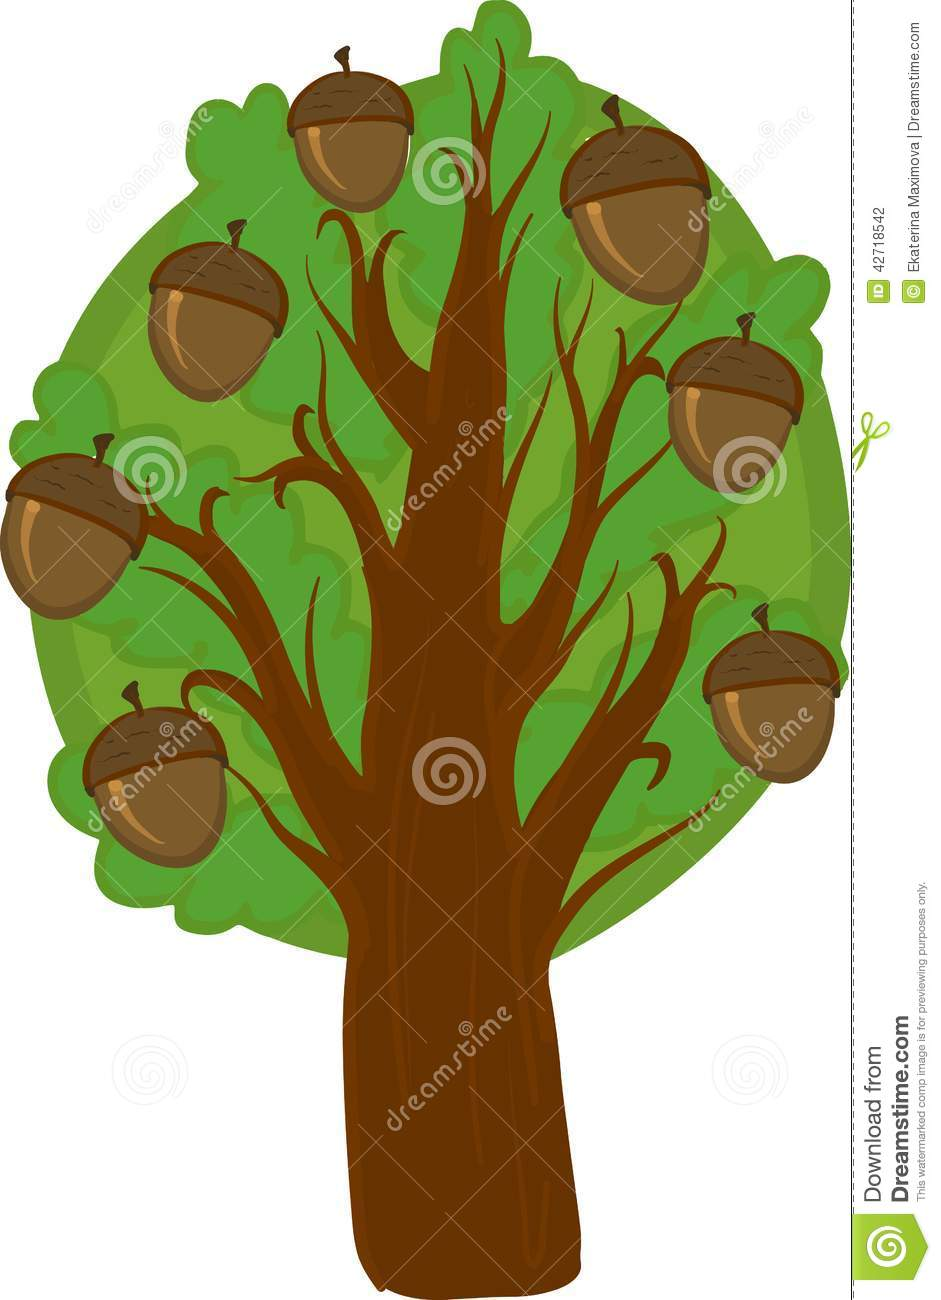 Oak Tree Silhouette Stock Vectors Clipart and Illustrations